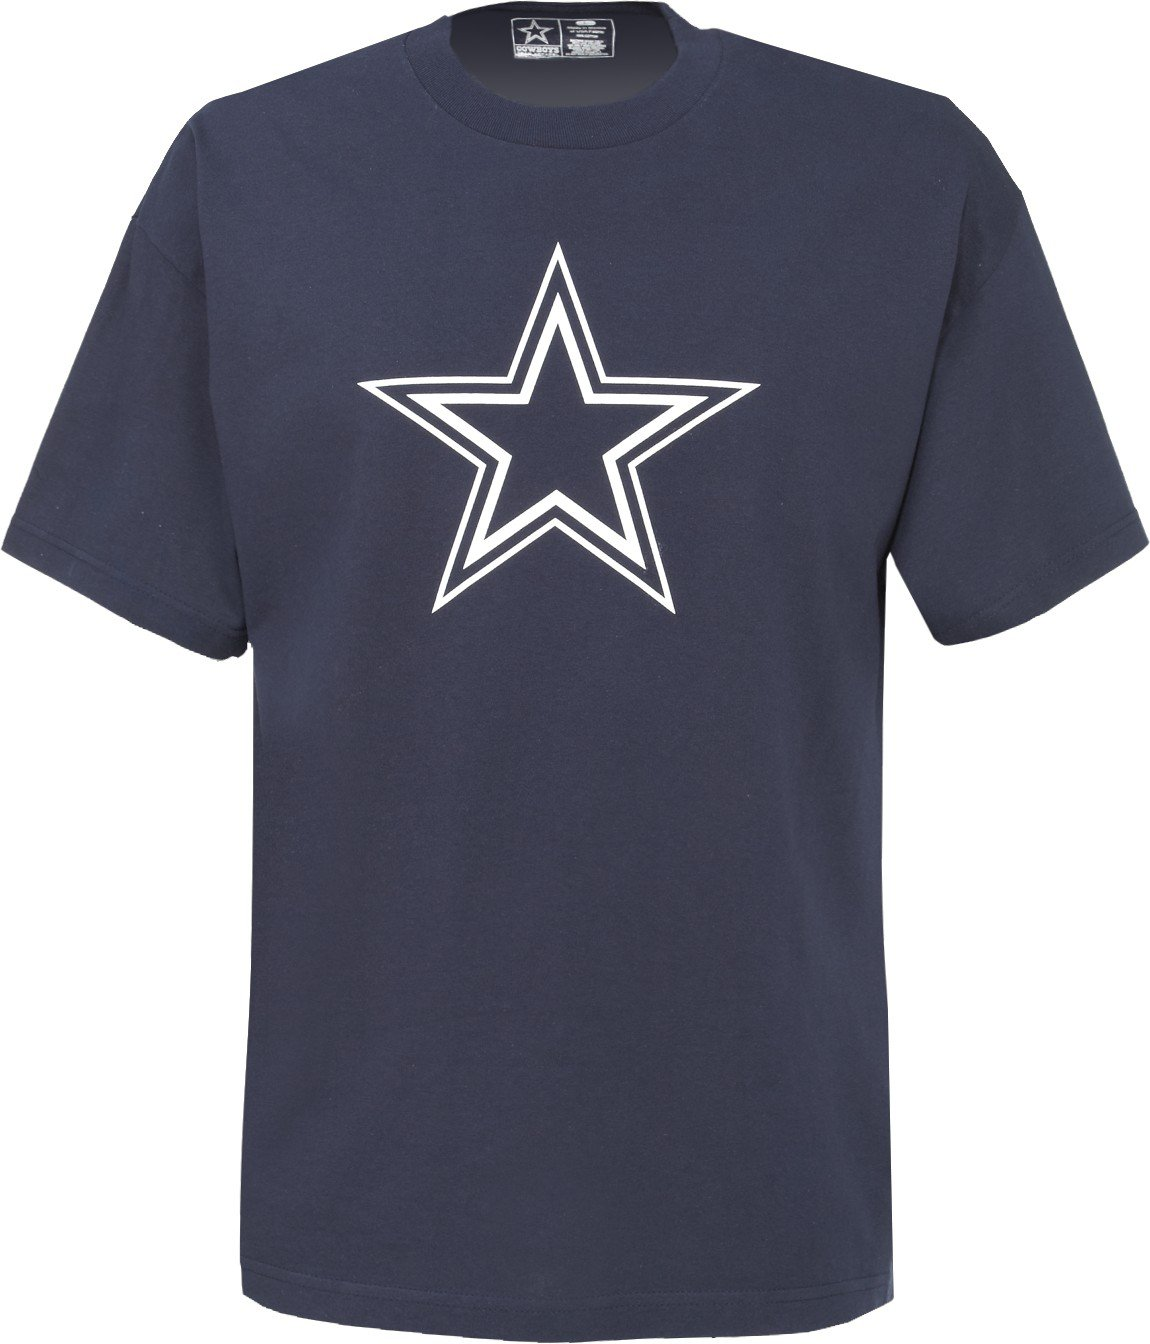 ddb70806 Display product reviews for Dallas Cowboys Men's Logo Premier T-shirt